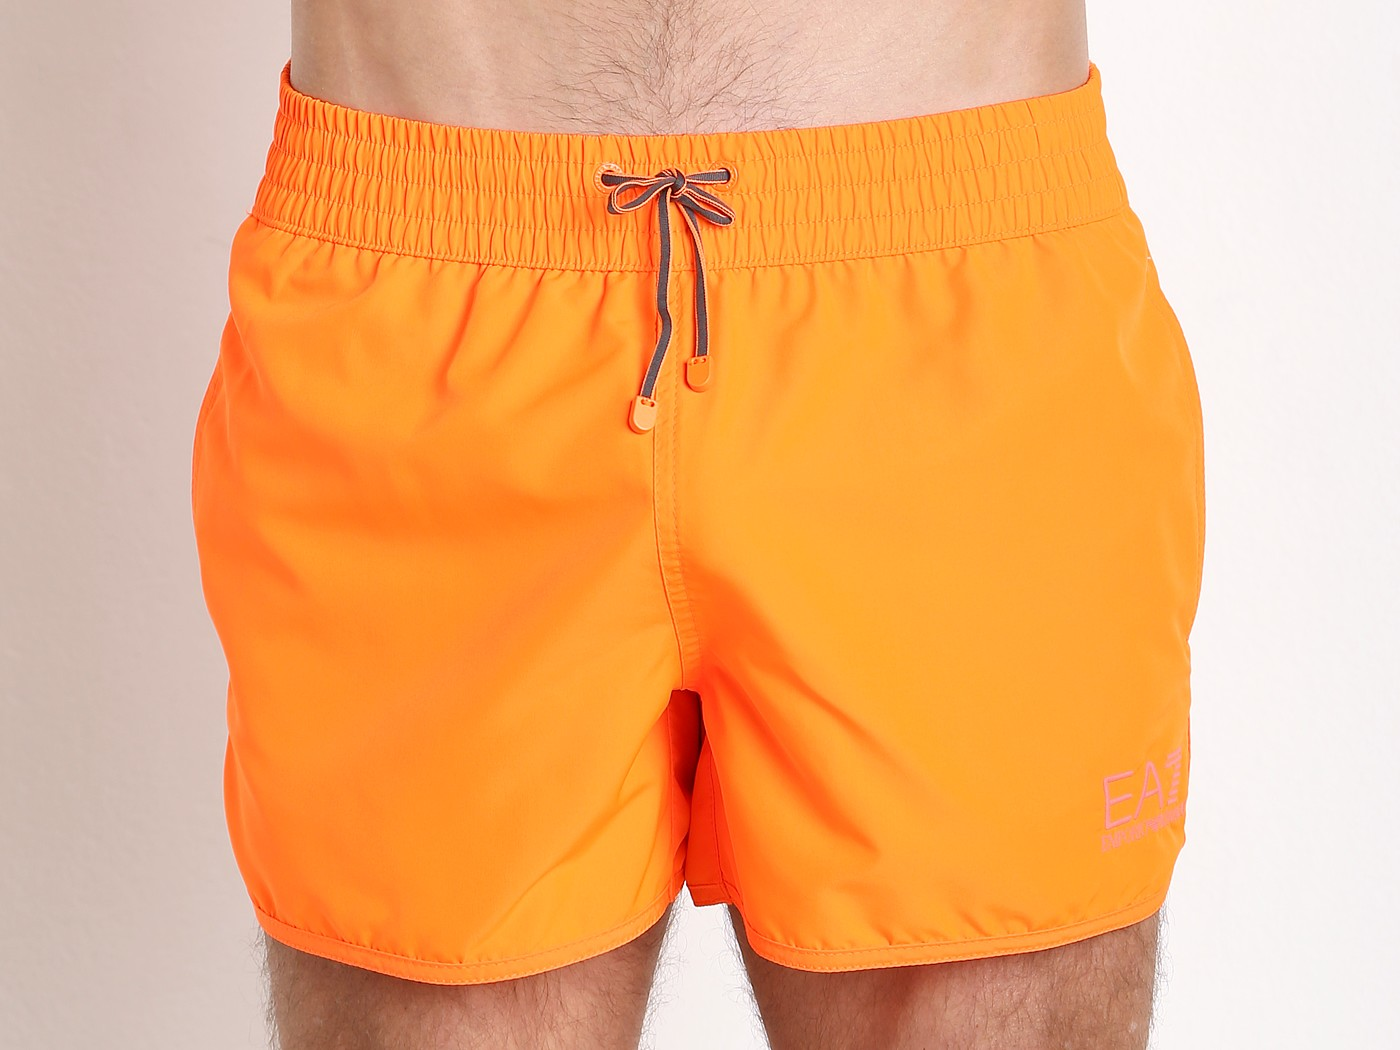 5d68dee8fd0 Emporio Armani Bright Fluo Swim Shorts Red Orange 902007-6P740-00662 at  International Jock